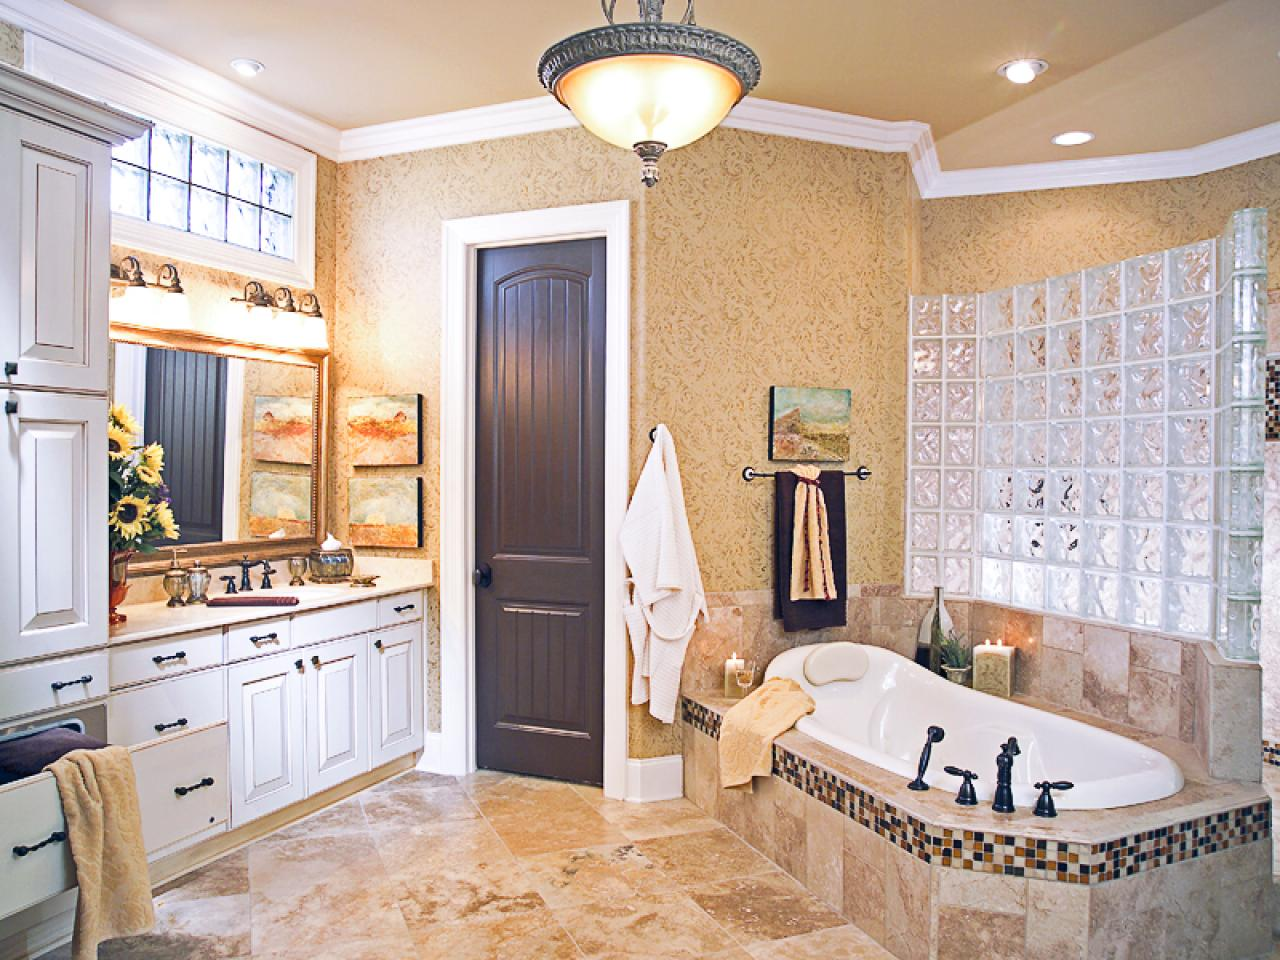 Walk In Tub Designs Pictures Ideas Tips From Hgtv: Spanish-Style Bathrooms: Pictures, Ideas & Tips From HGTV